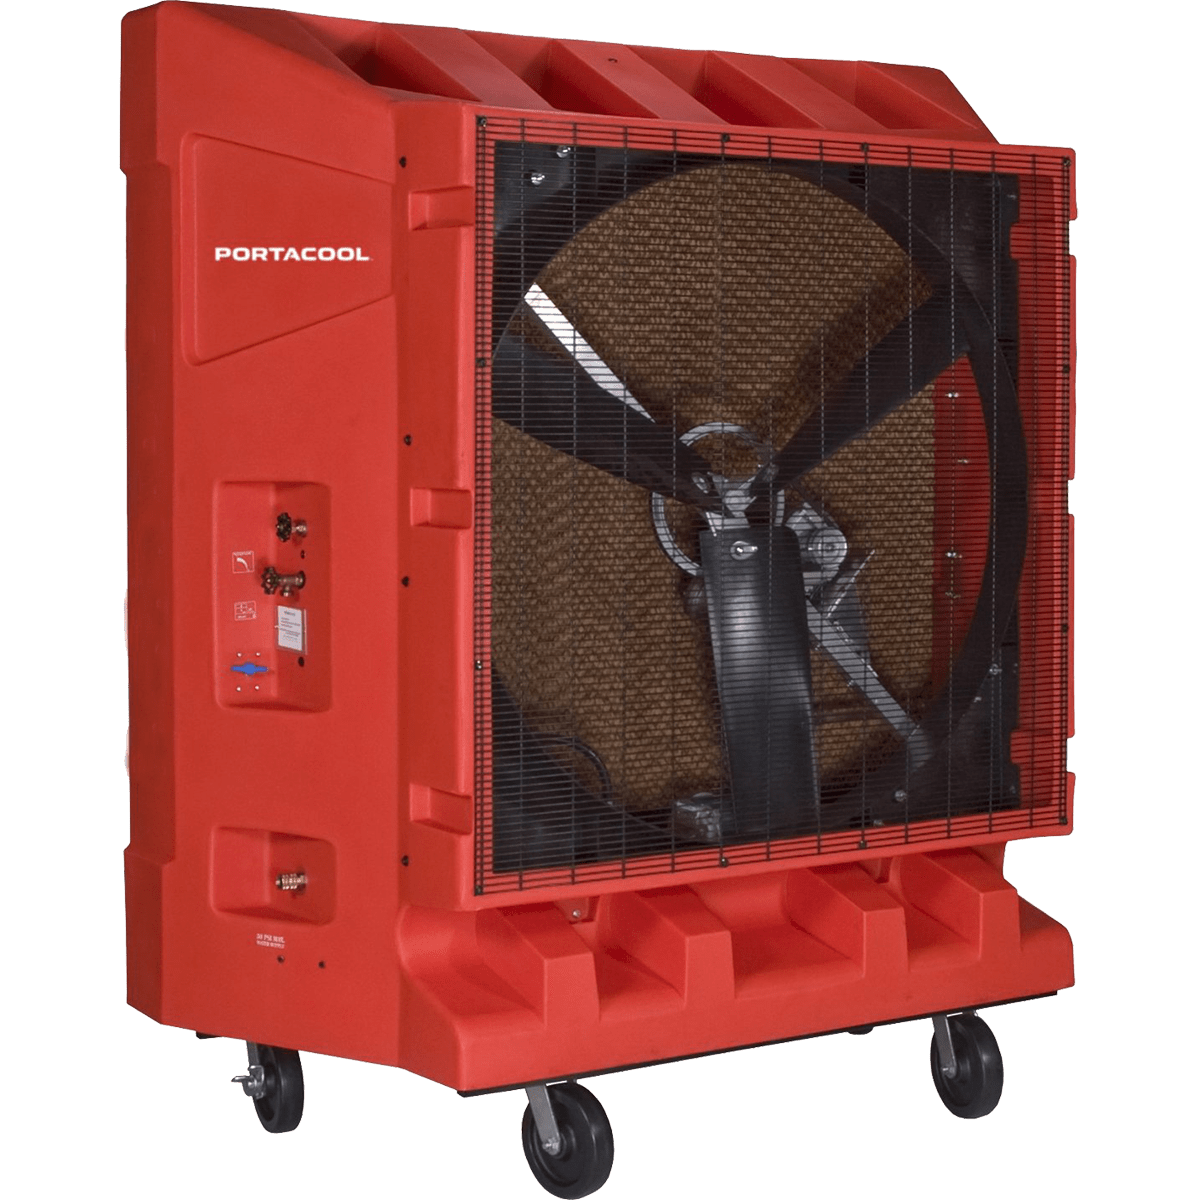 Portacool 48-Inch Hazardous Location Evaporative Cooler (PAC2K48HZ) po2147